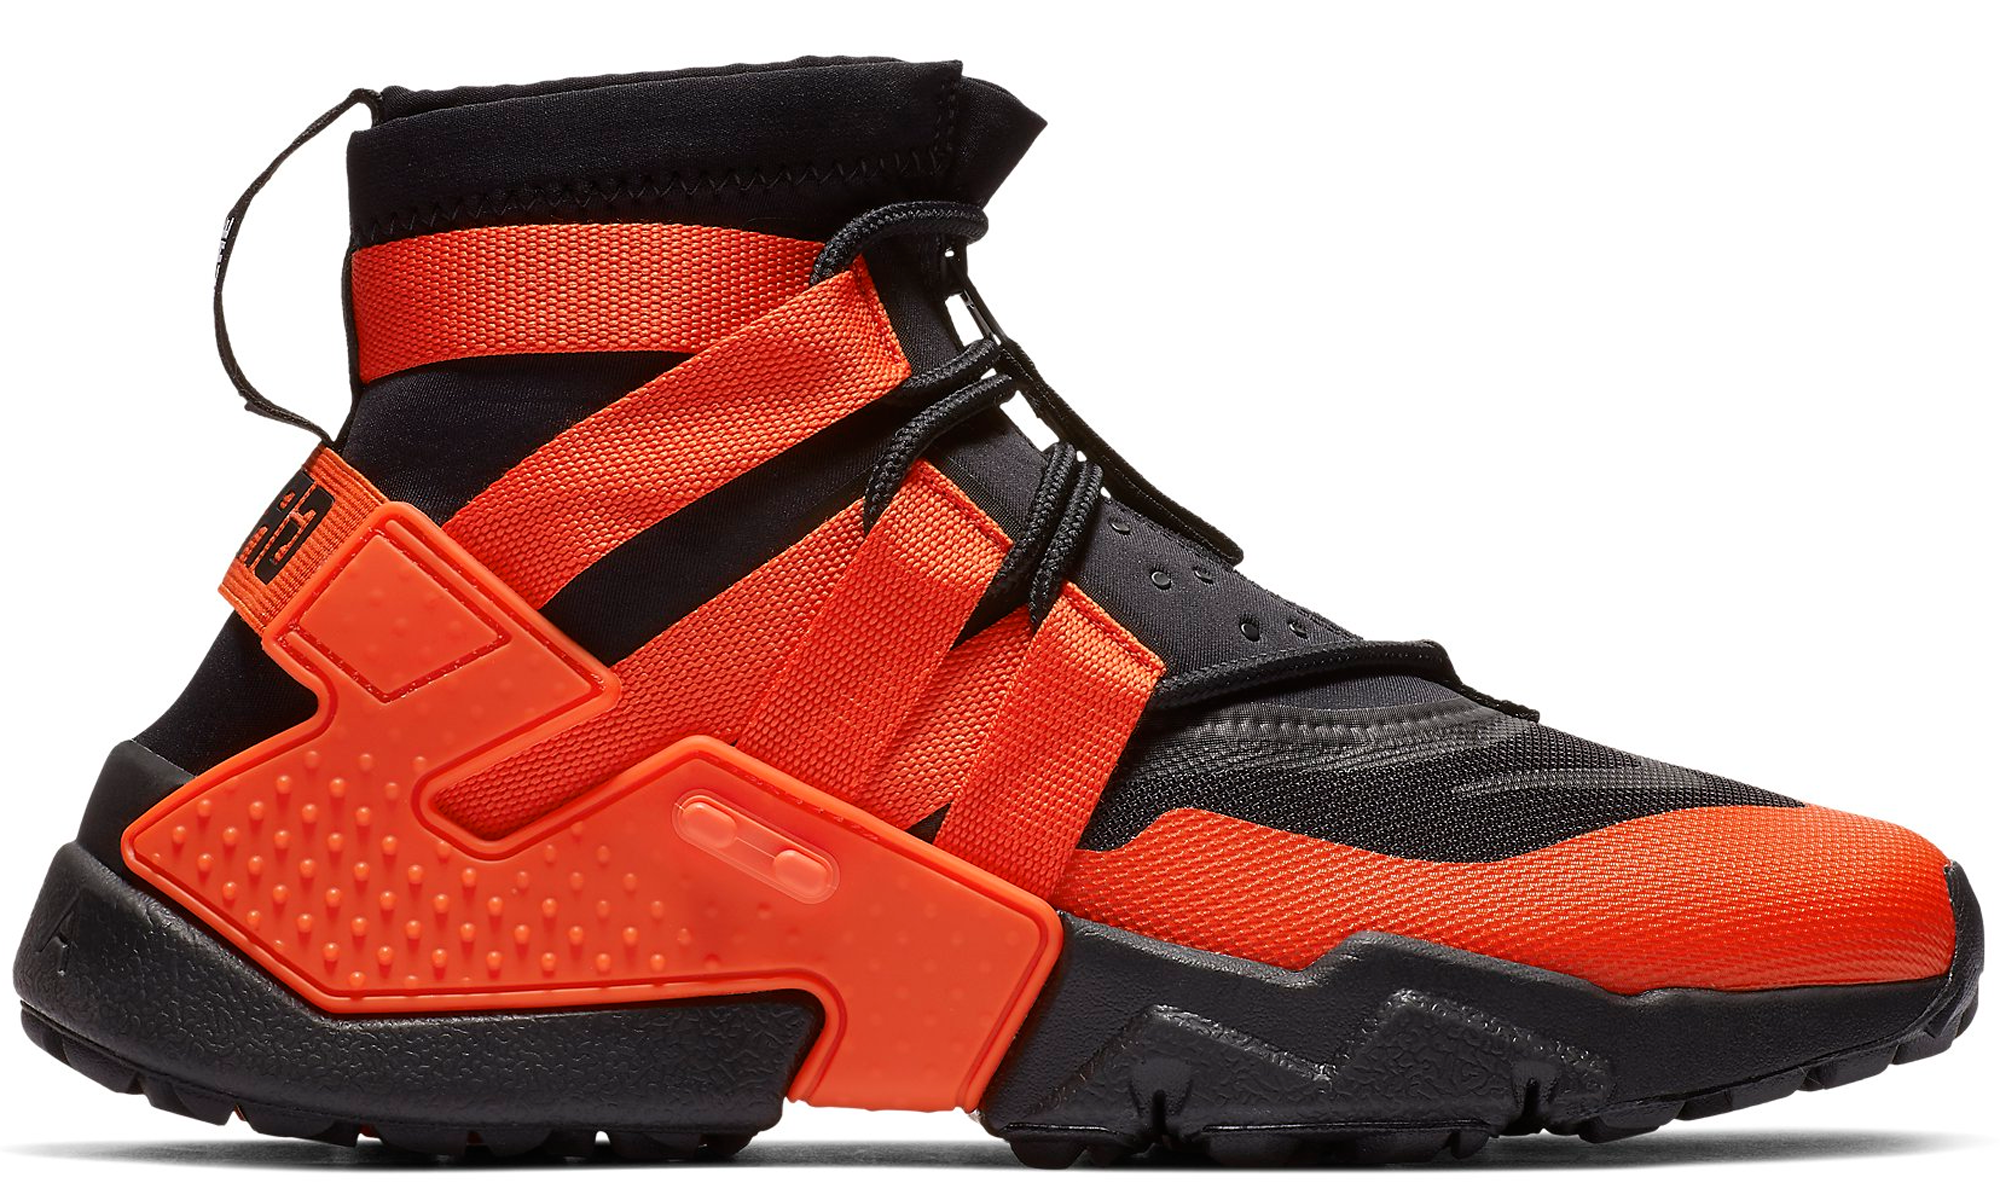 Nike Air Huarache Ultra Max Orange Wolf Grey Anthracite Black 819685 800 Mens Womens Running Shoes 819685 800